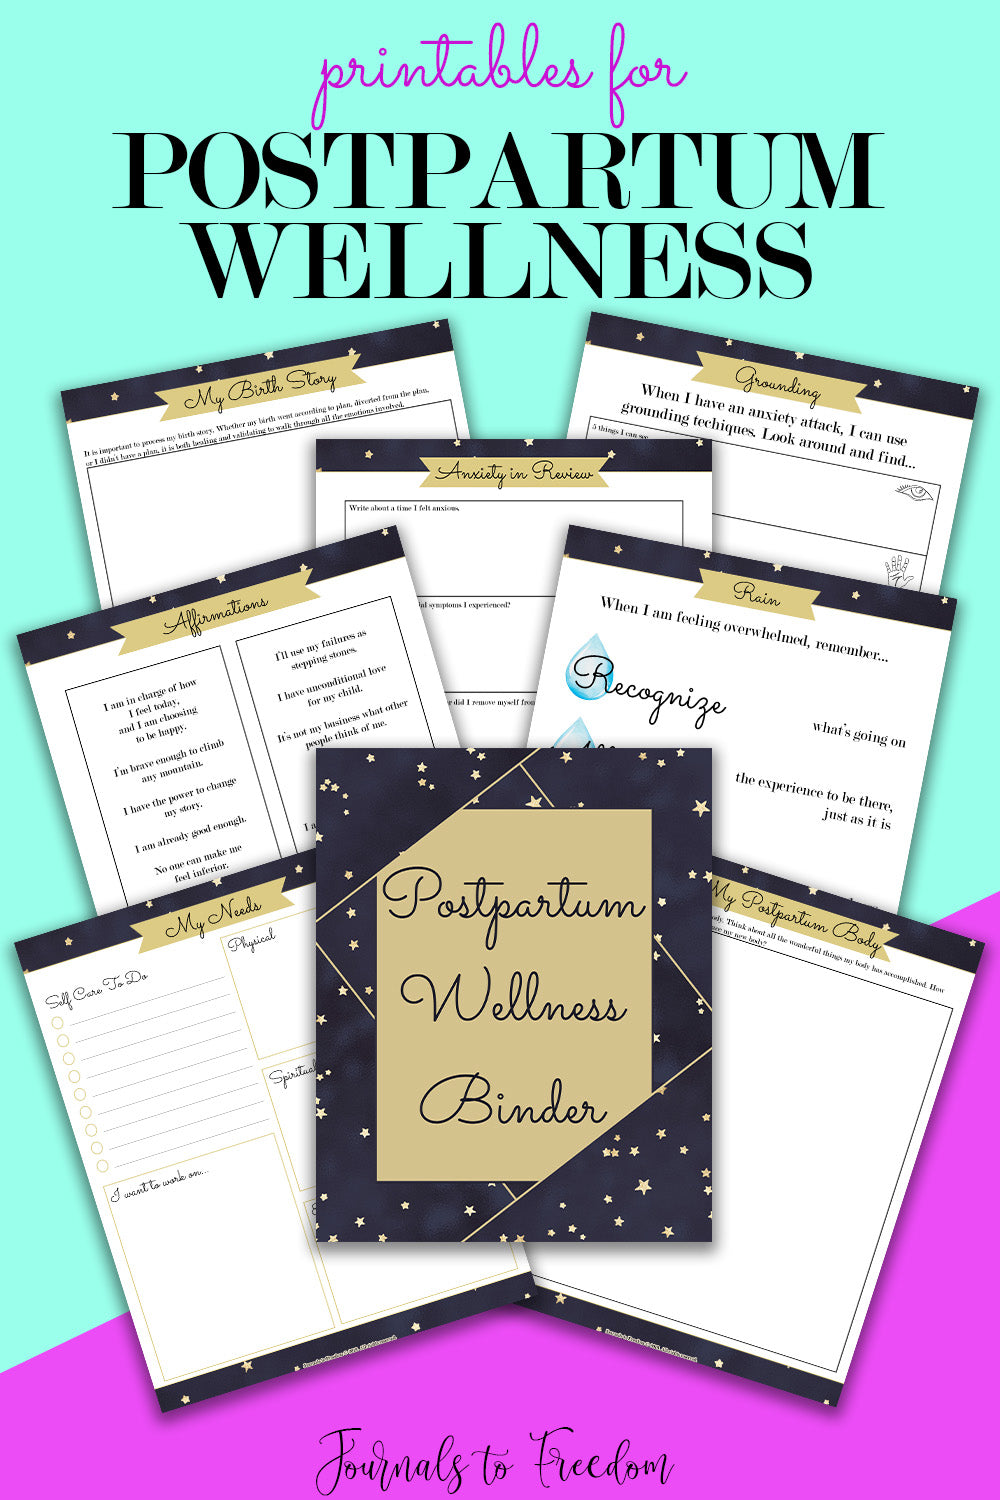 Printables for Postpartum Wellness - Journals to Freedom